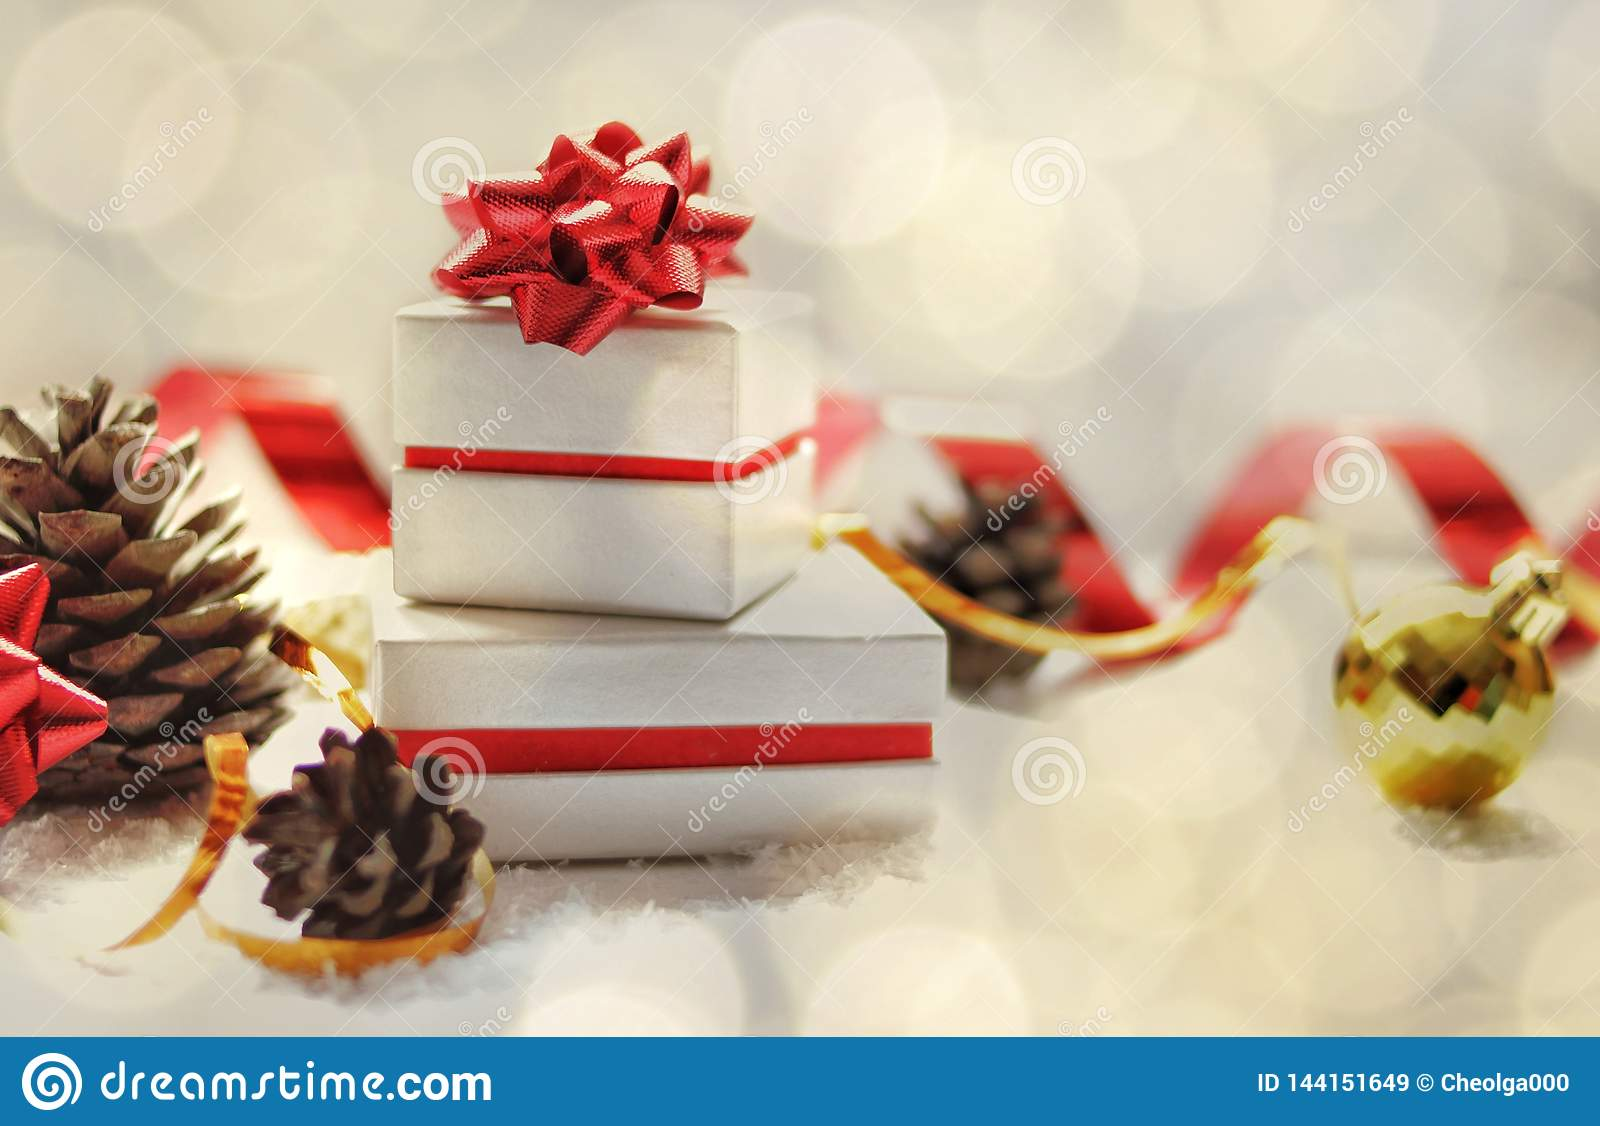 Christmas card. Christmas gift boxes with a red bow, Christmas ball, red ribbon, cones on a white background with snow and lights